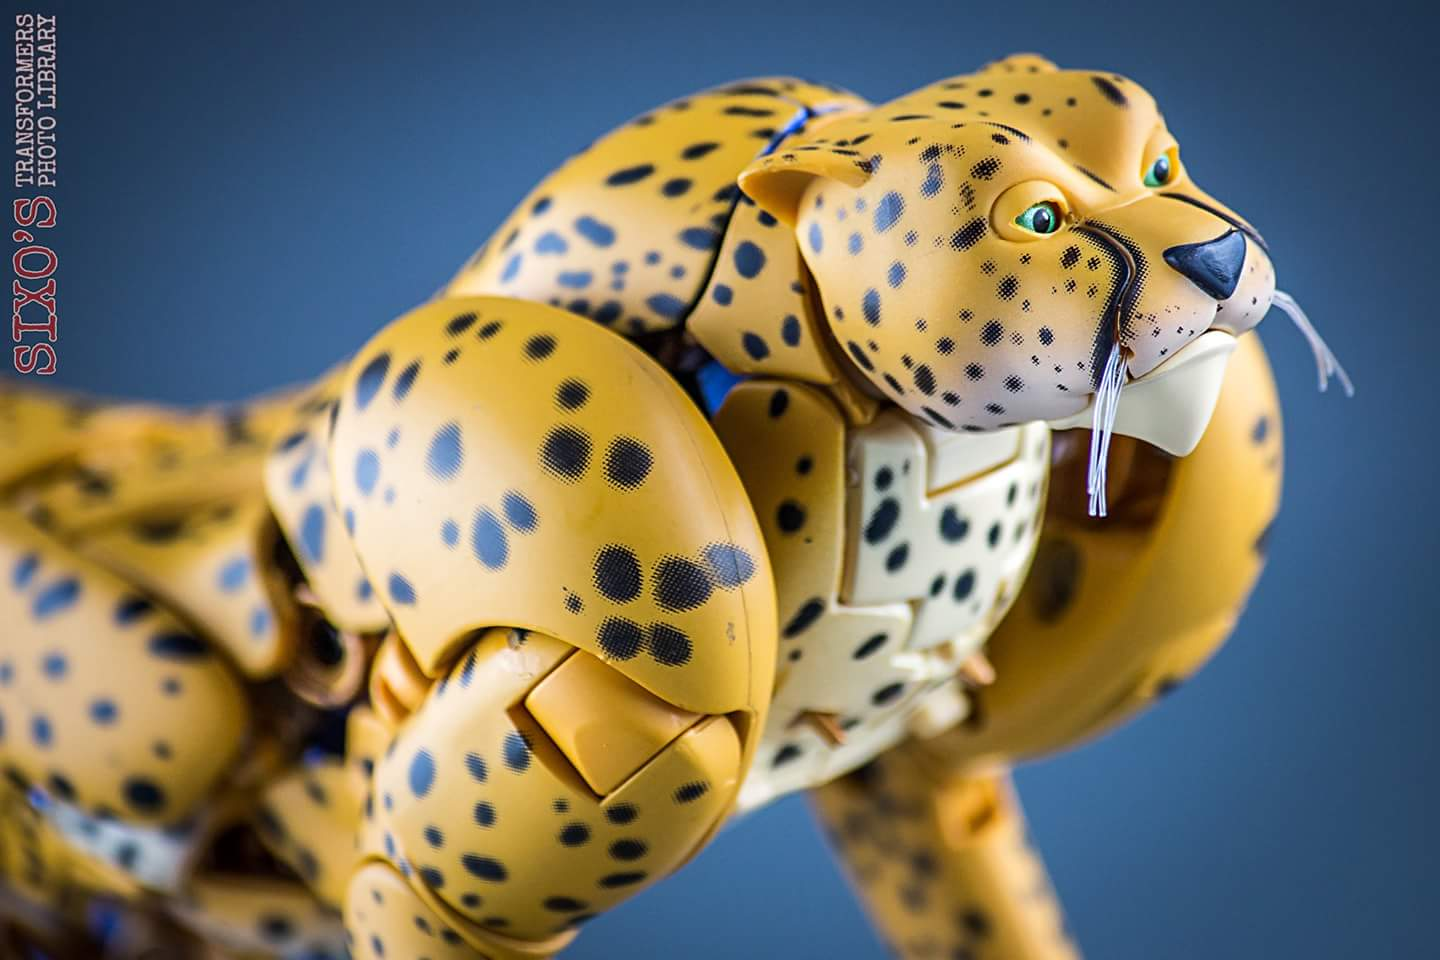 [Masterpiece] MP-34 Cheetor et MP-34S Shadow Panther (Beast Wars) - Page 2 VqHKdMN9